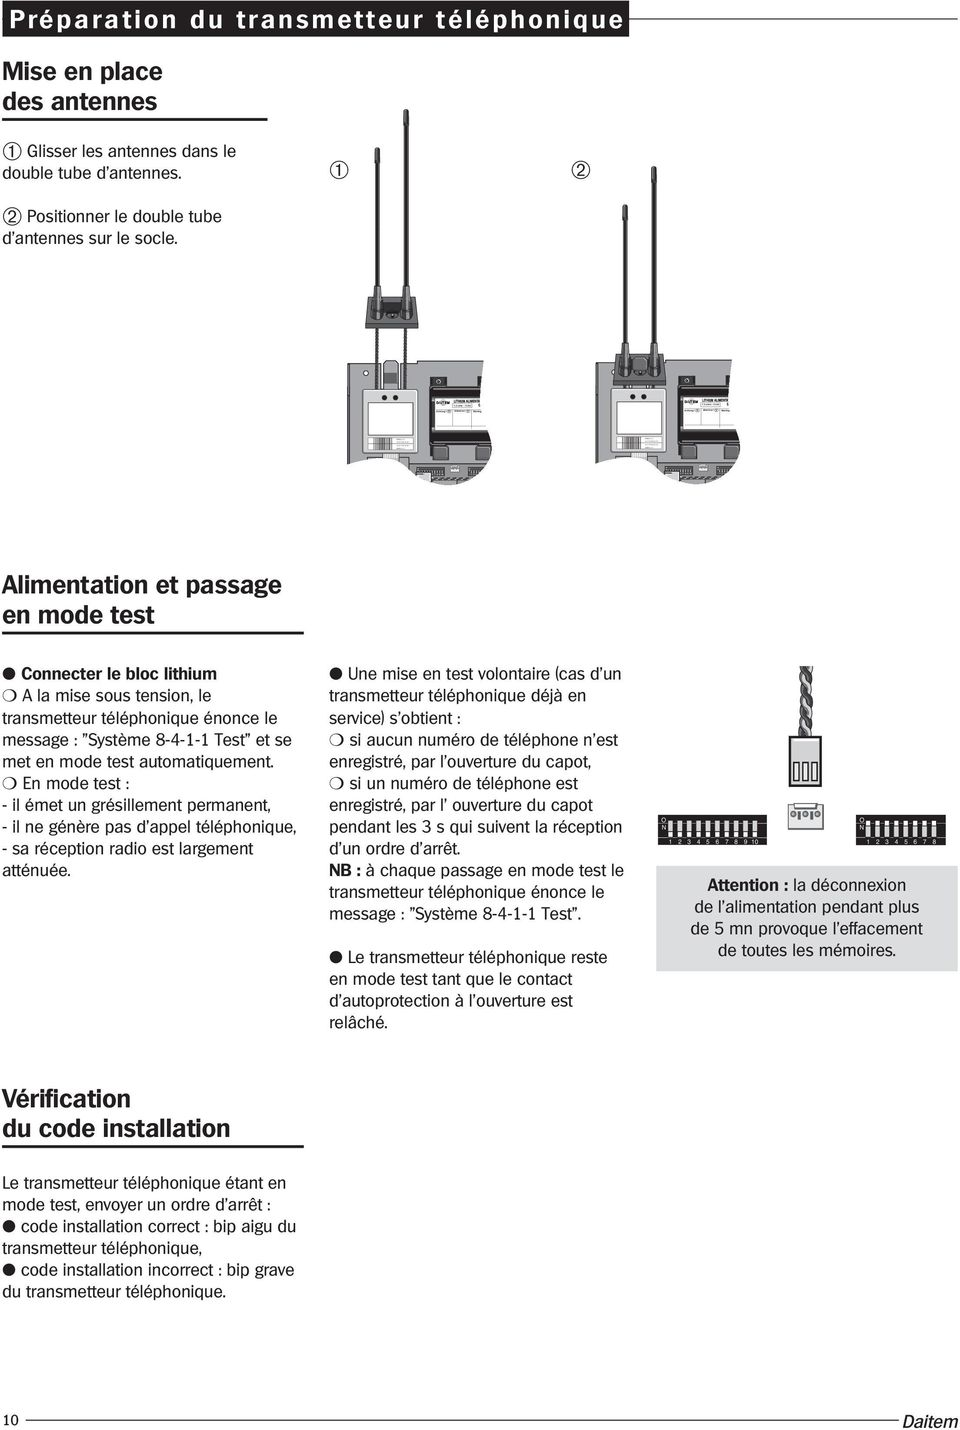 ➁ Positionner le double tube d'antennes sur le socle.